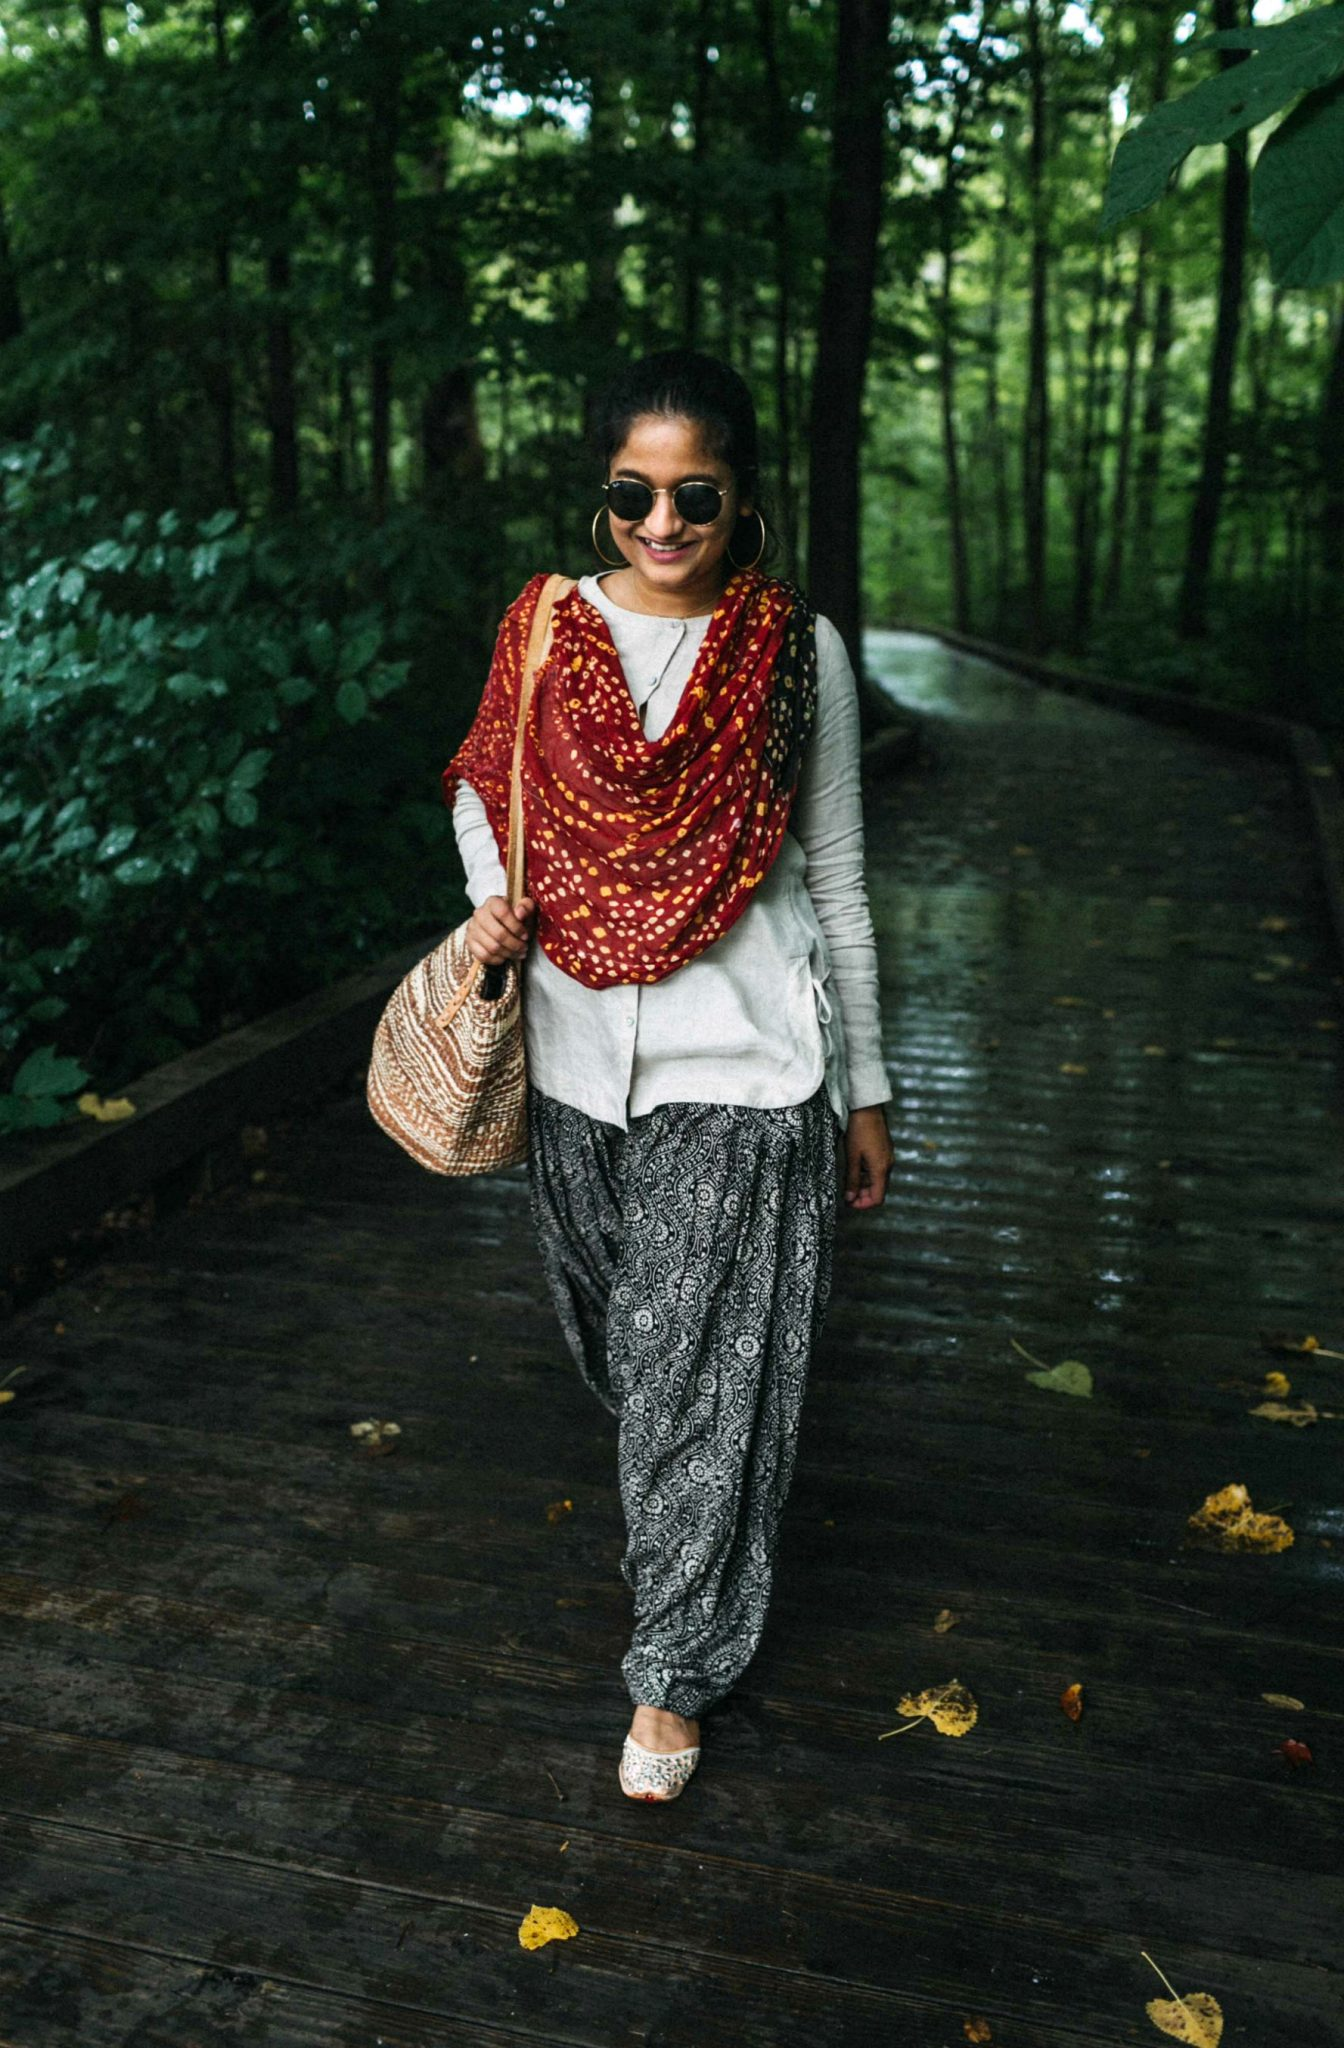 wearing J.Jill Linen Side-Tie Tunic with Patiala pant | 15 Desi / Indian Customs of Mine: wearing patiala pants, featured by popular Ohio fashion blogger, Dreaming Loud | Indo Western by popular Maryland modest fashion blog, Dreaming Loud: image of a woman wearing an Indo Wester outfit with a linen top, red print dupatta, and patiala pants.